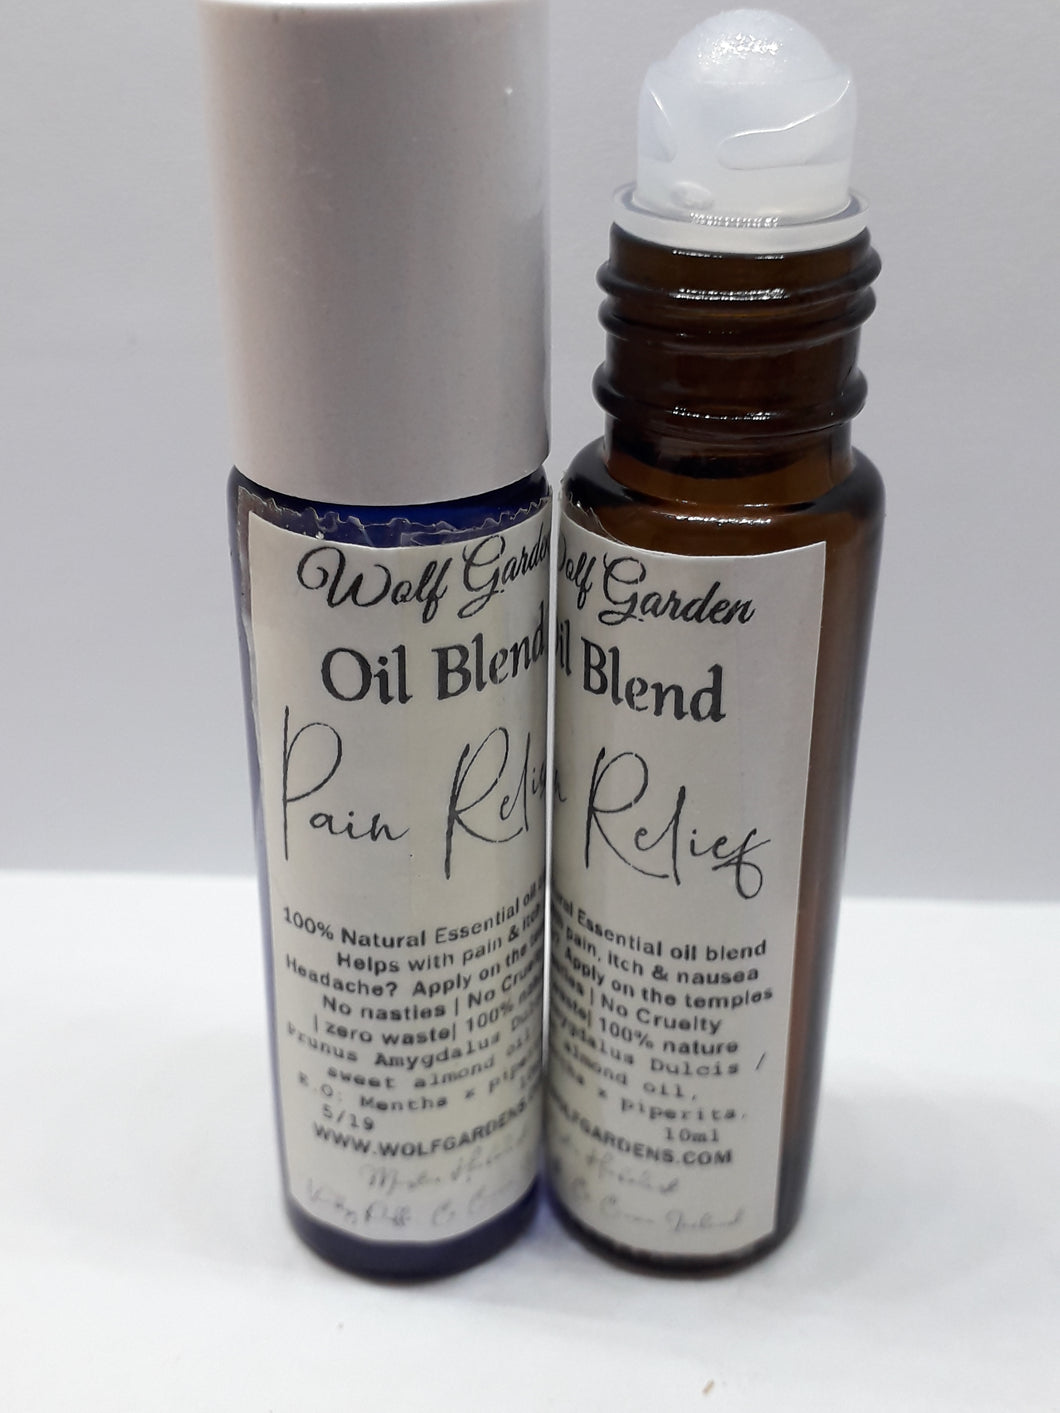 Pain relief Headaches & insect Bites | roll on first aid oil